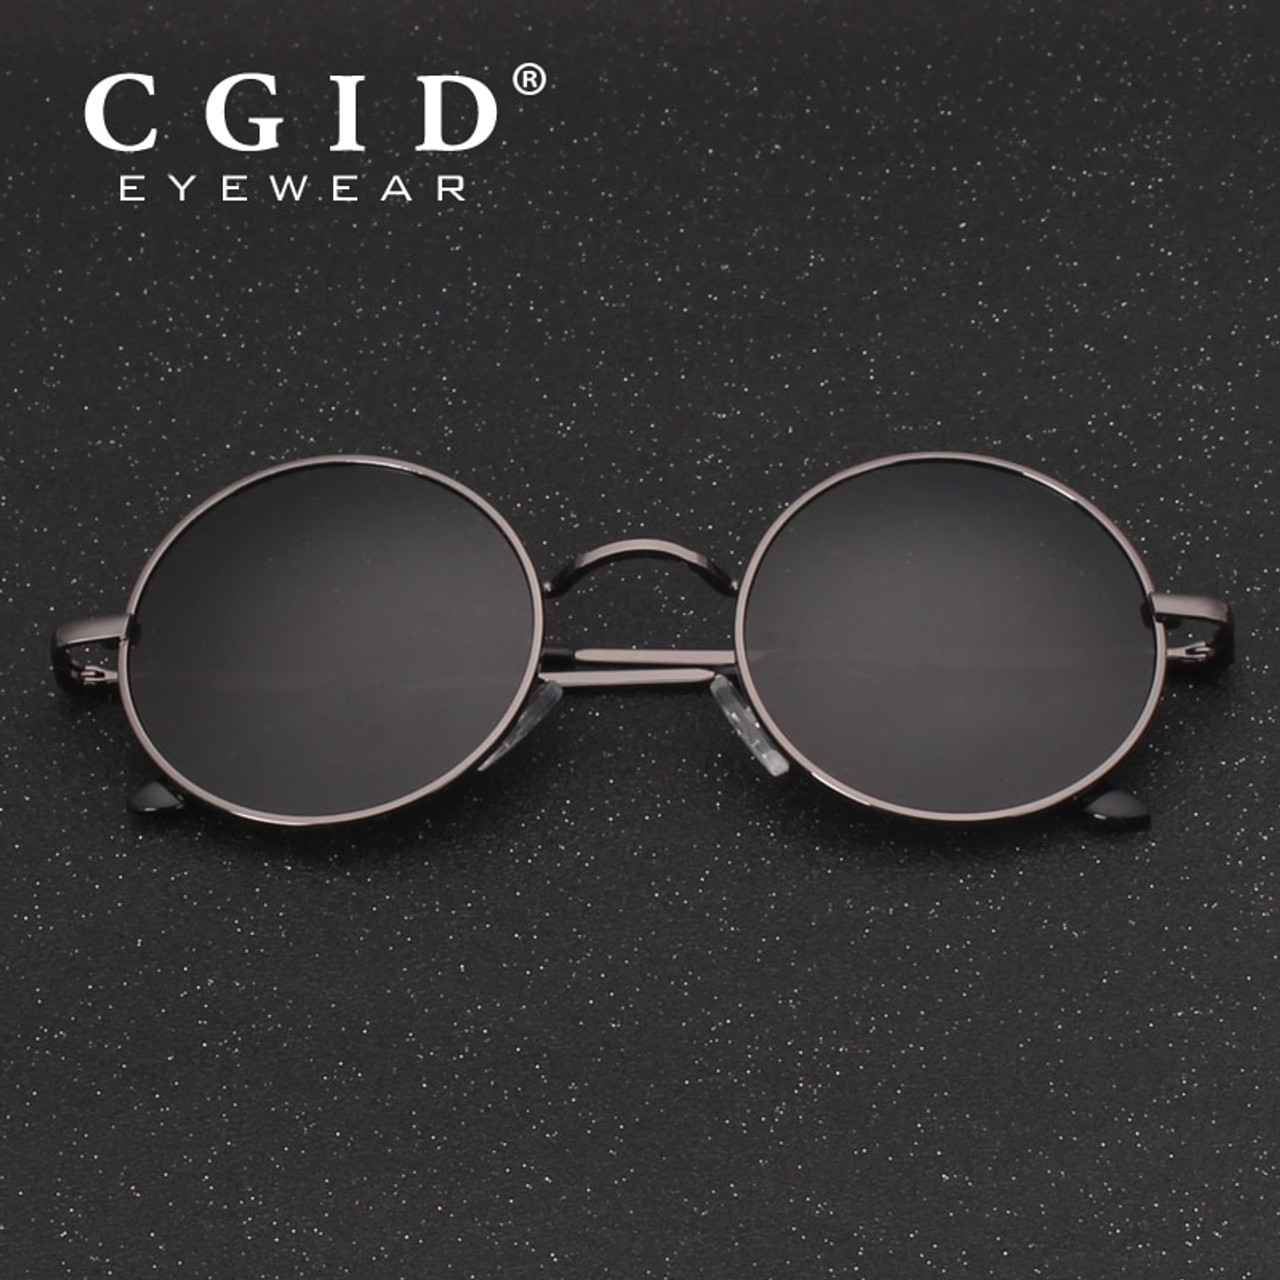 0181a4d30e5 CGID 2018 Round Lennon Sunglasses Polarized Retro Vintage Inspired Metal  Circle Black Sun glasses for Men ...